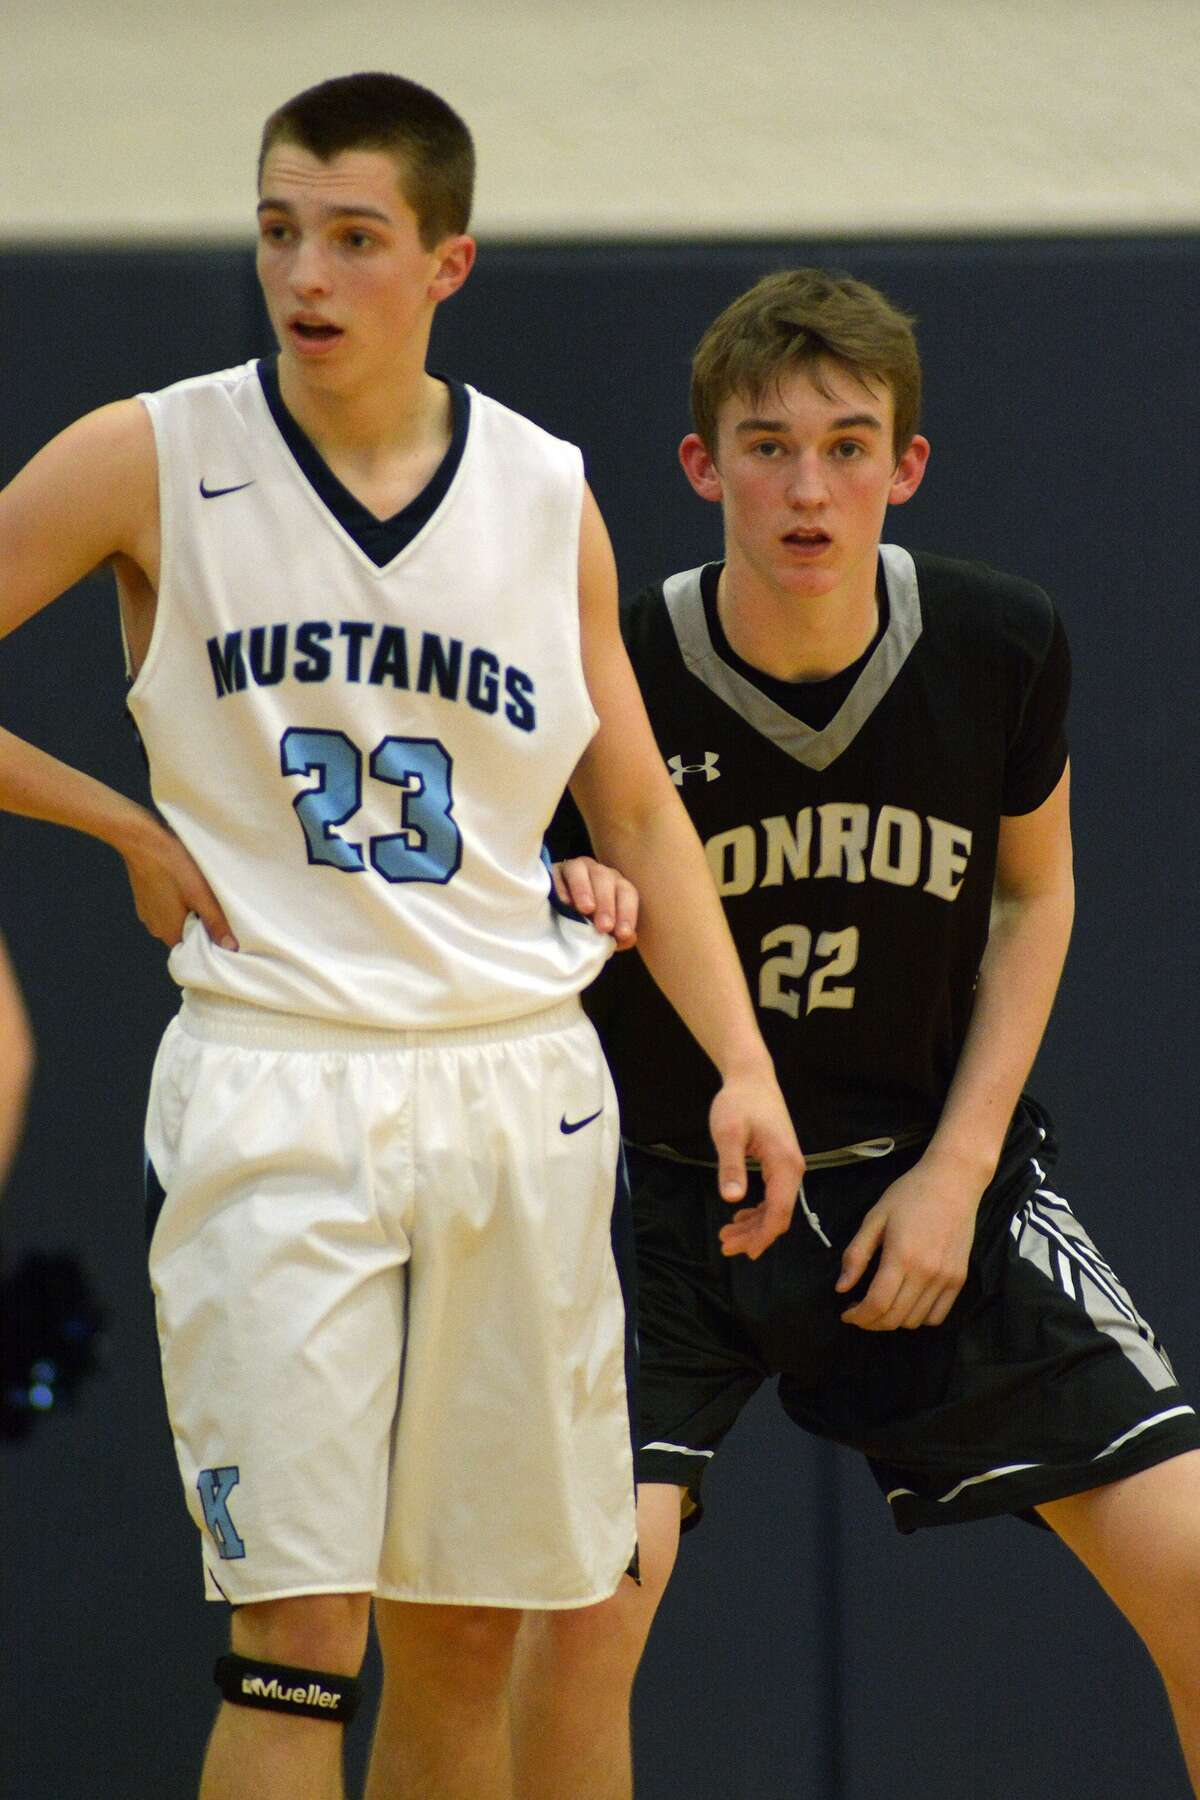 Conroe 6'1 junior guard Blaine Alger, right, plays defense against Kingwood 6'0 junior guard Matt Charles during their District 16-6A matchup at KHS on Feb. 5, 2016. (Photo by Jerry Baker/Freelance)